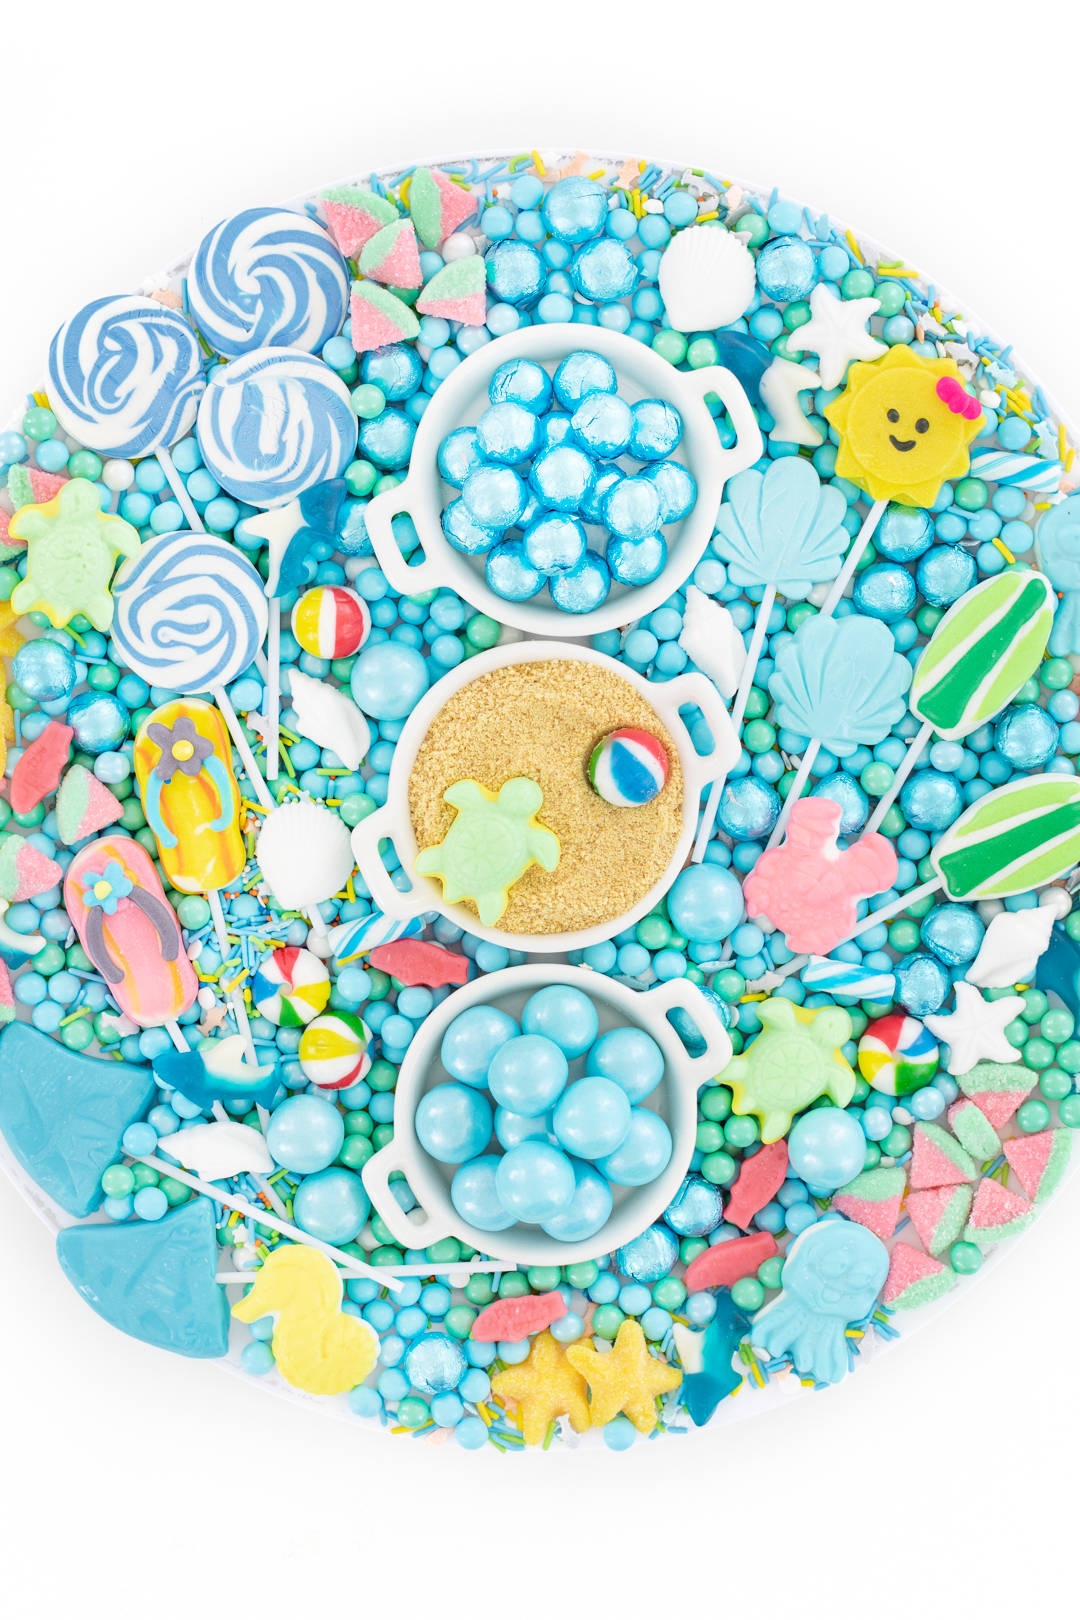 beach themed party tray filled with cool candy